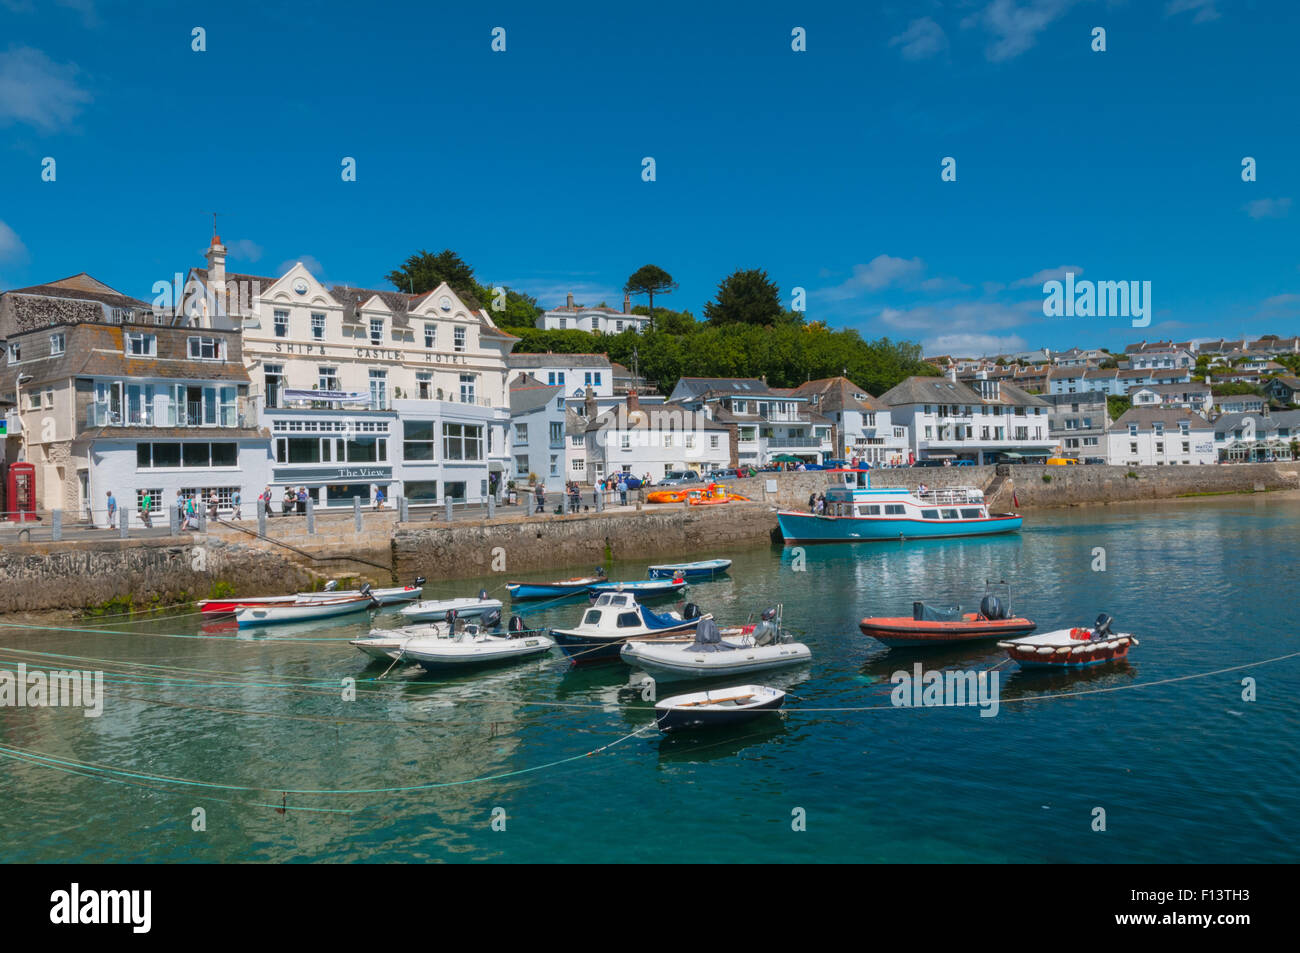 Boote in St. Mawes Hafen St Mawes Cornwall England 06/20111 Stockbild